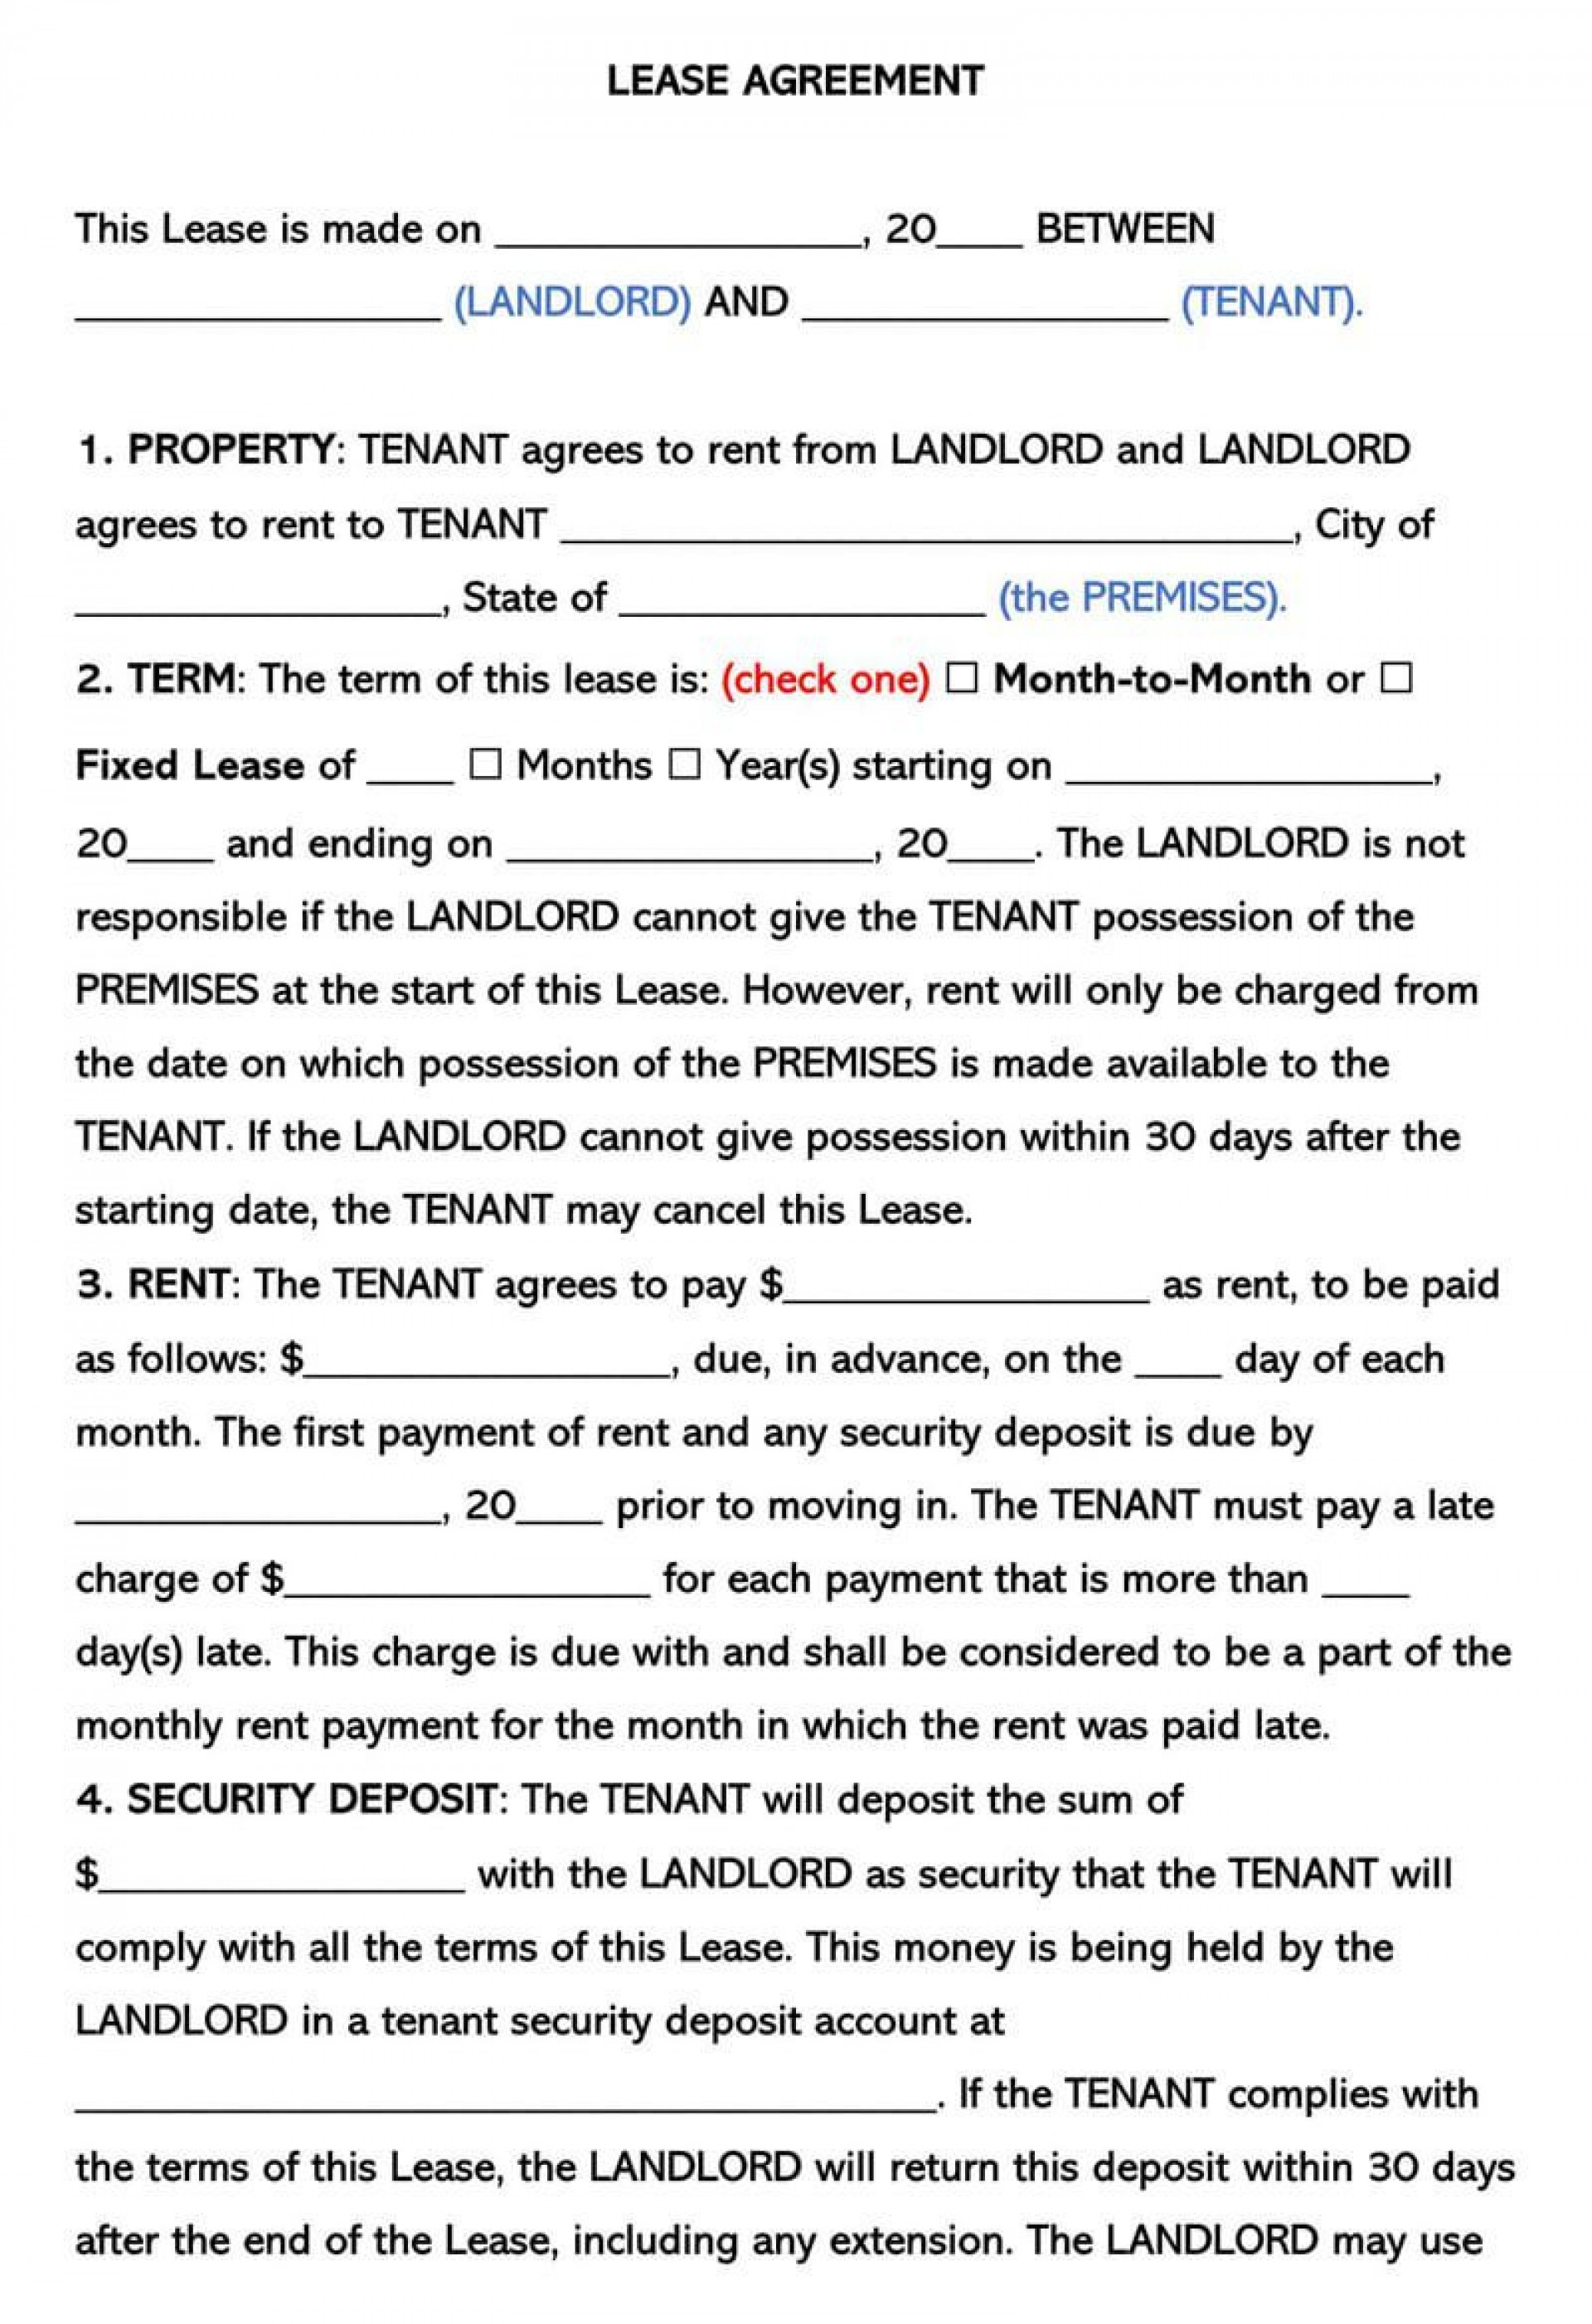 004 Rare Free Template For Rental Lease Agreement Sample  Printable Tenant Form South Africa1920